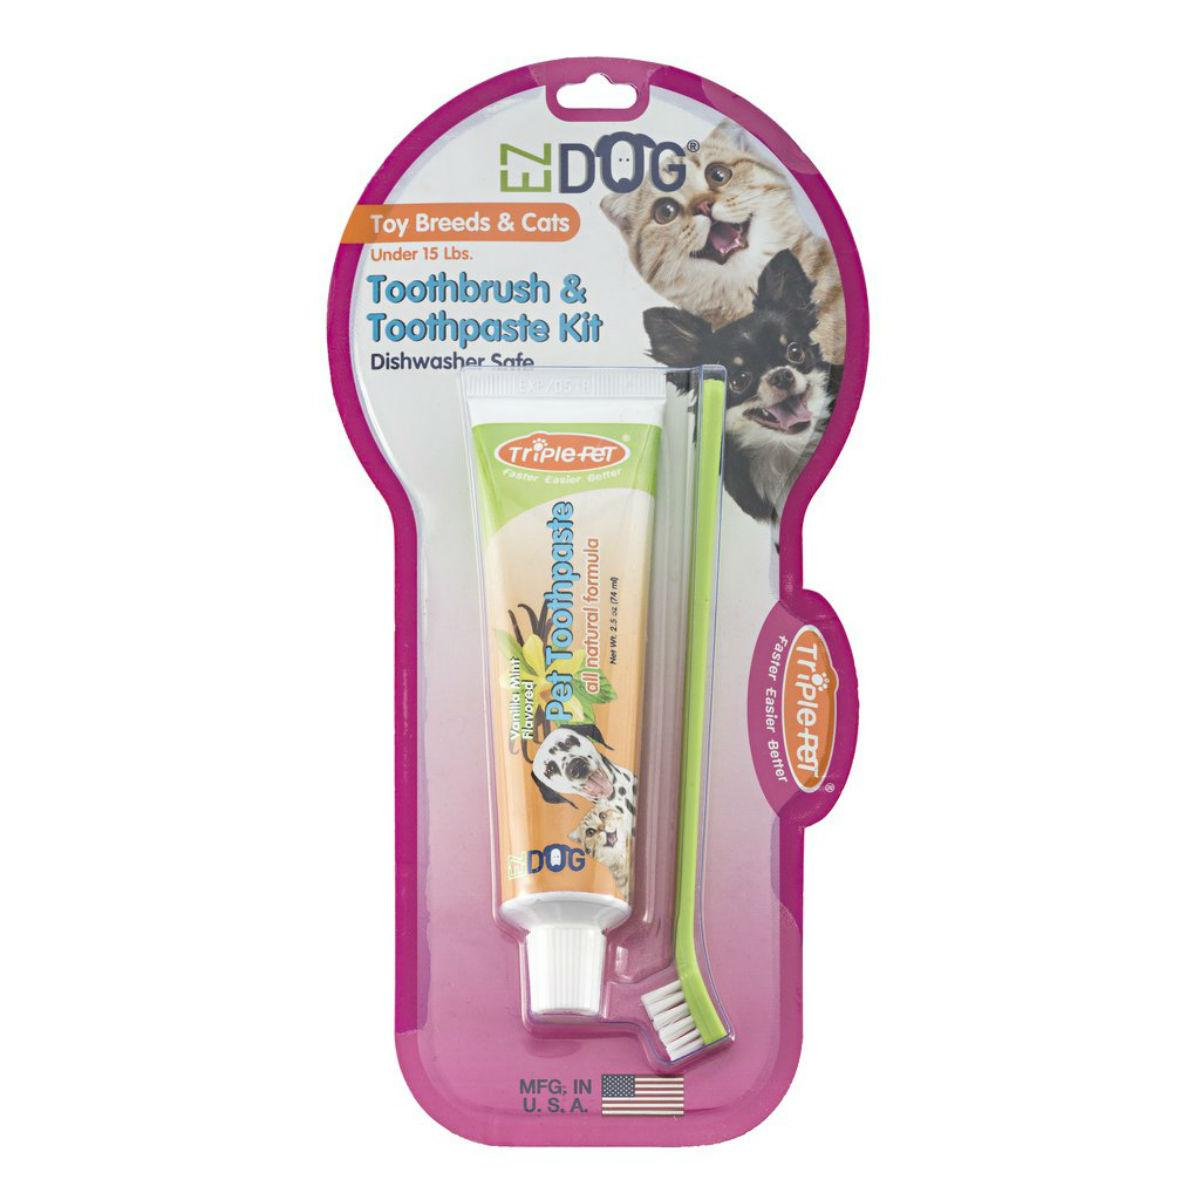 EZ Dog 3-Sided Toothbrush & Natural Toothpaste Kit for Toy Dog Breeds and Cats - Vanilla Flavor